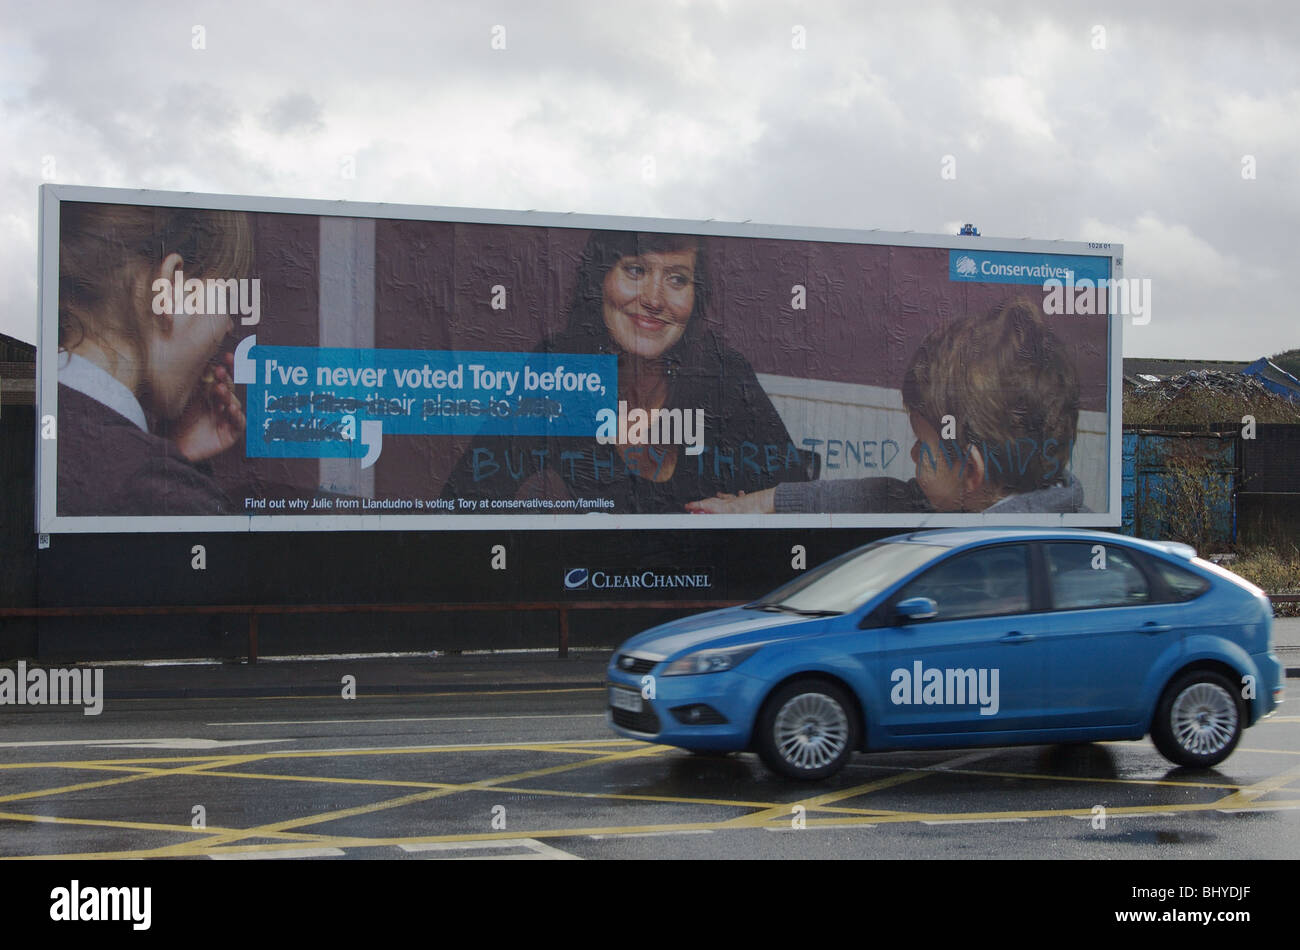 Defaced Conservative party billboard with text I've never voted Tory before BUT THEY THREATENED MY KIDS(graffiti - Stock Image